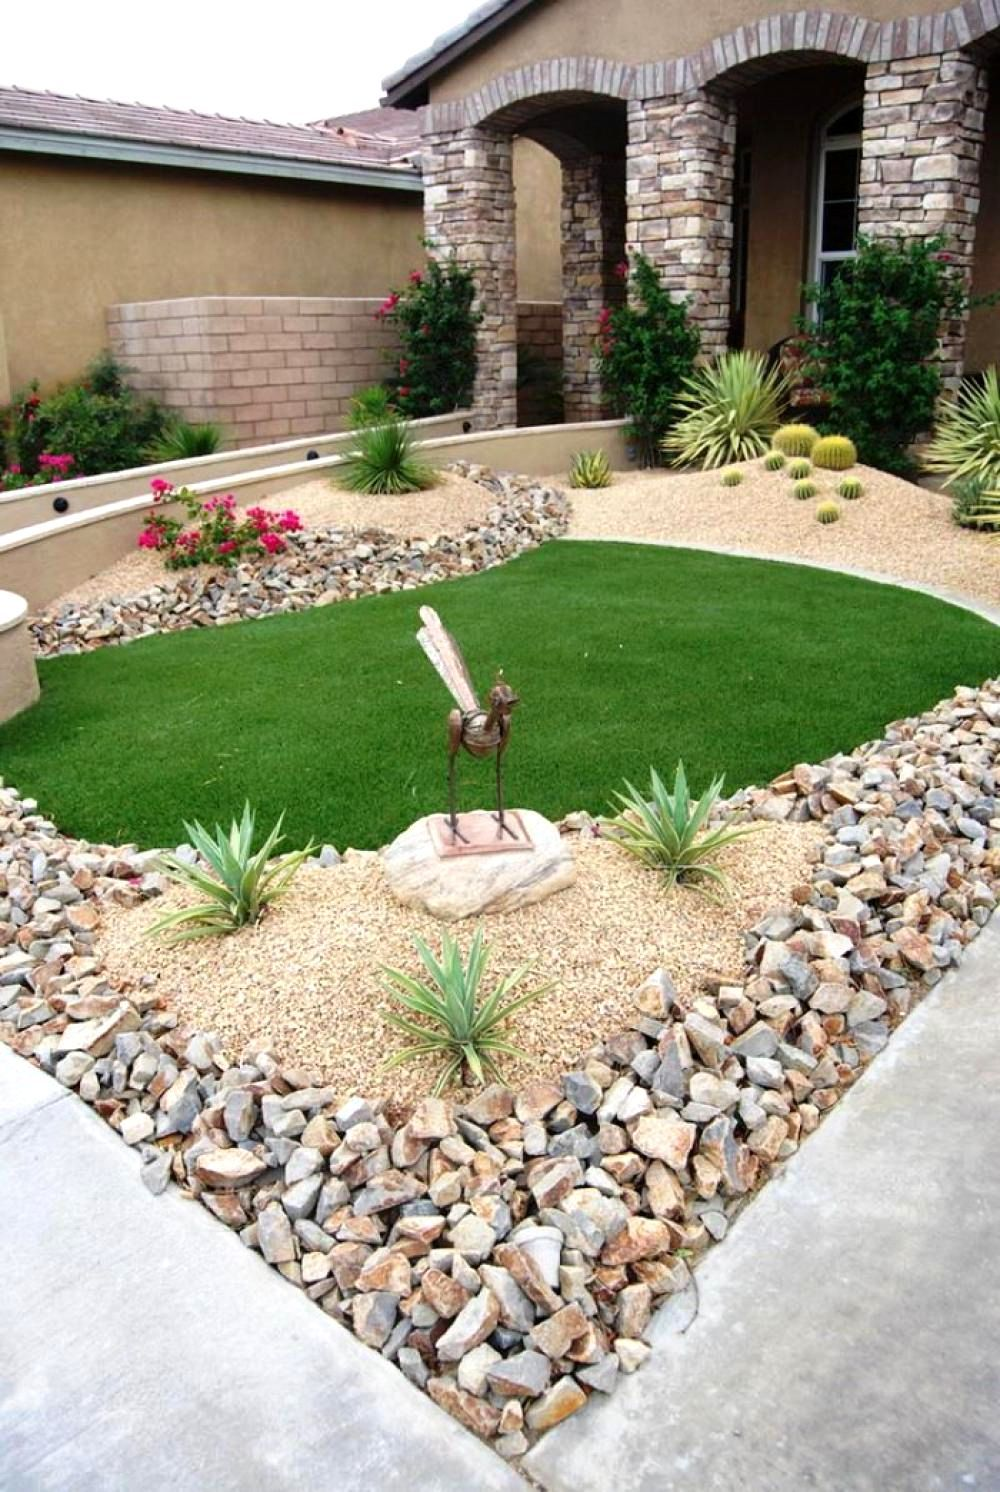 Low Maintenance Gravel Garden Designs Front Yard Garden Design Front Yard Landscaping Design Small Front Yard Landscaping